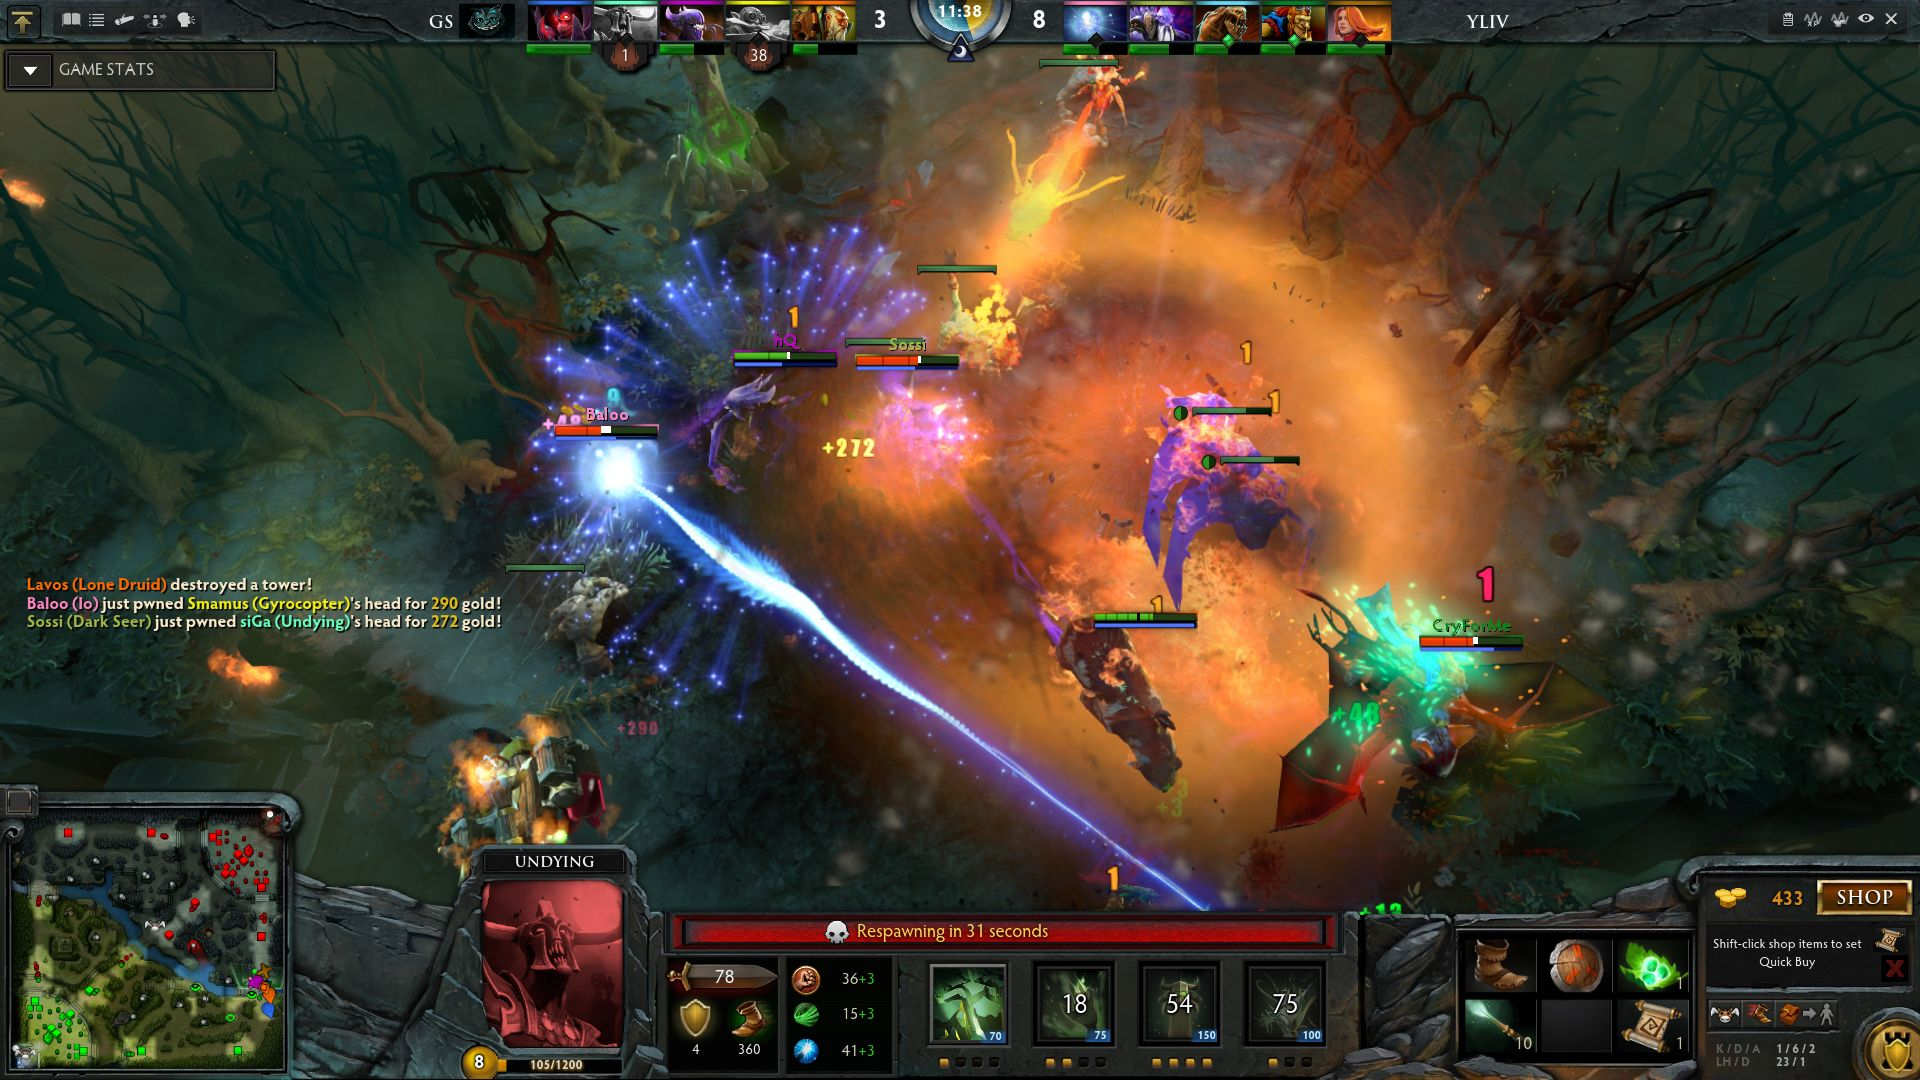 Dota 2: Comparing MOBAs: League Of Legends Vs. Dota 2 Vs. Smite Vs